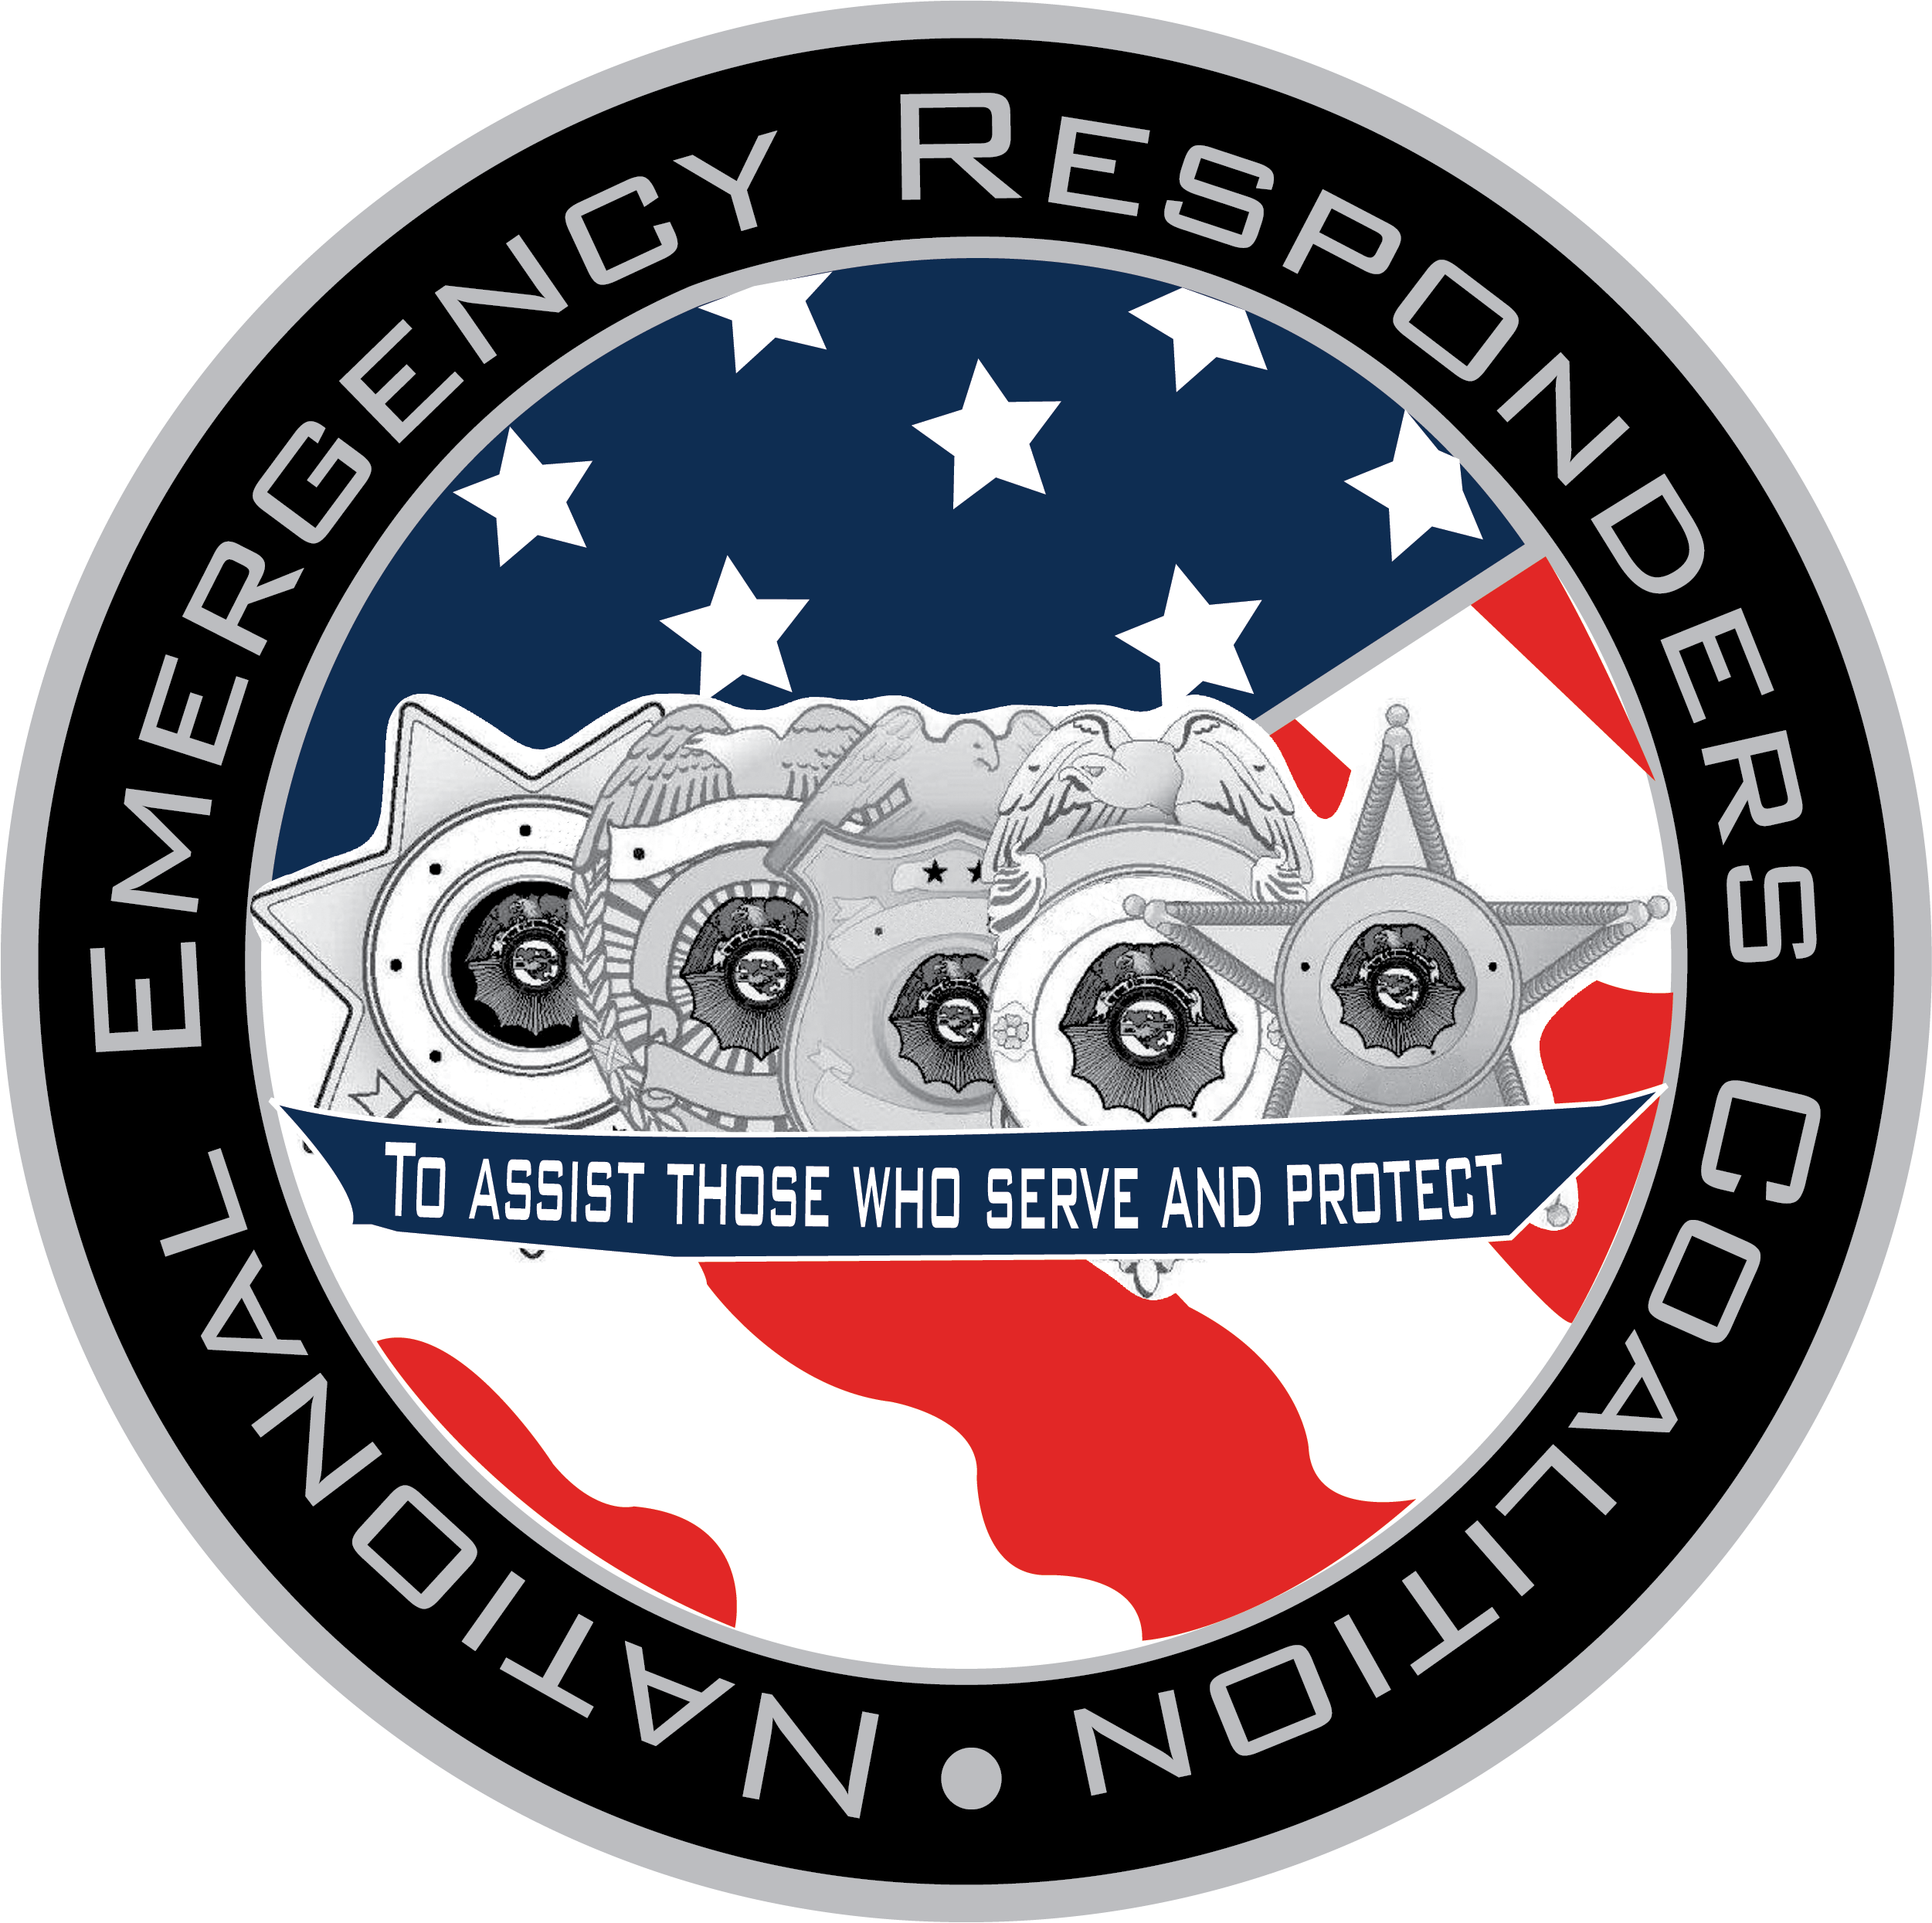 The National Emergency Responders Coalition